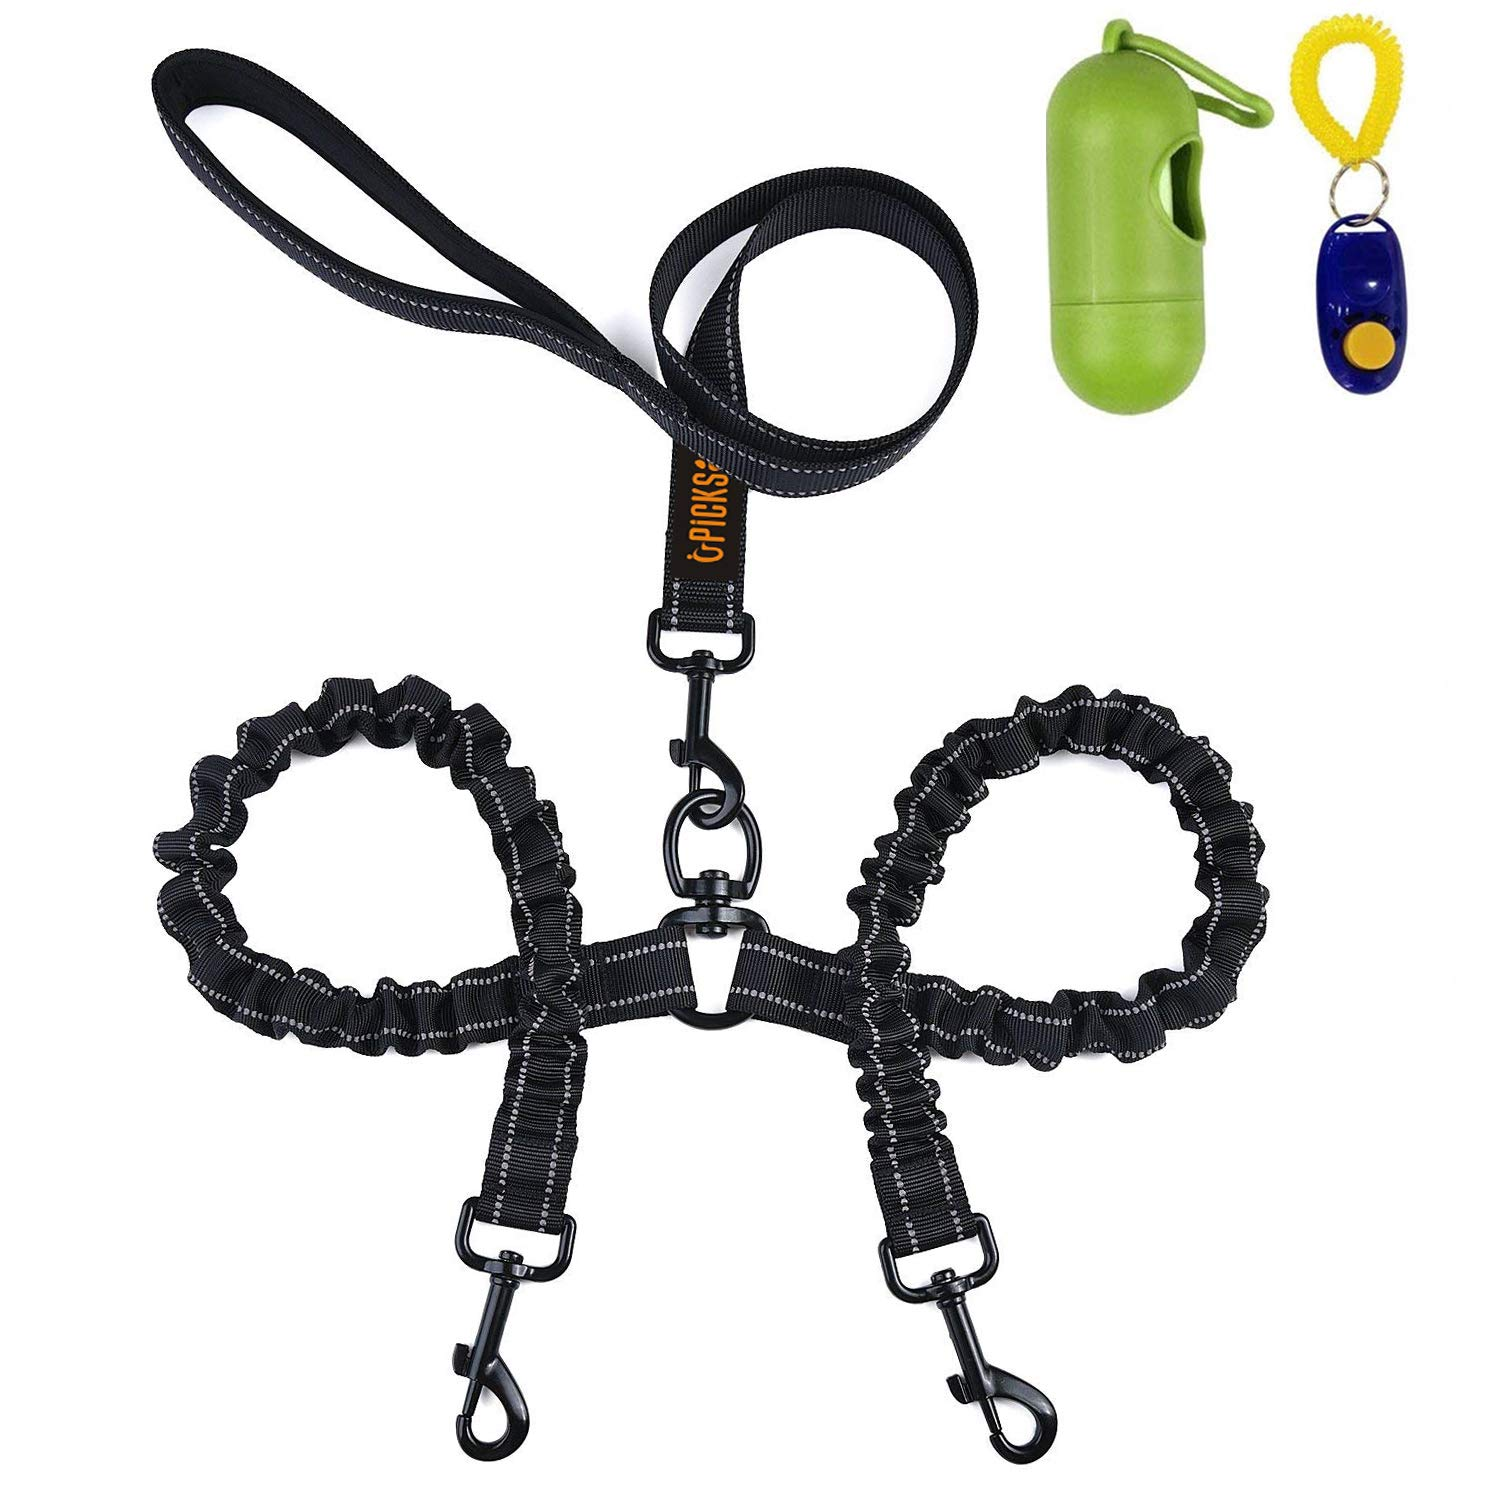 Bungee Leash Fit Large & Medium Dogs Dual Dog Leash, Double Dog Leash,360° Swivel No Tangle Double Dog Walking & Training Leash, Comfortable Shock Absorbing Reflective Bungee for Two Dogs with waste bag dispenser and dog training clicker